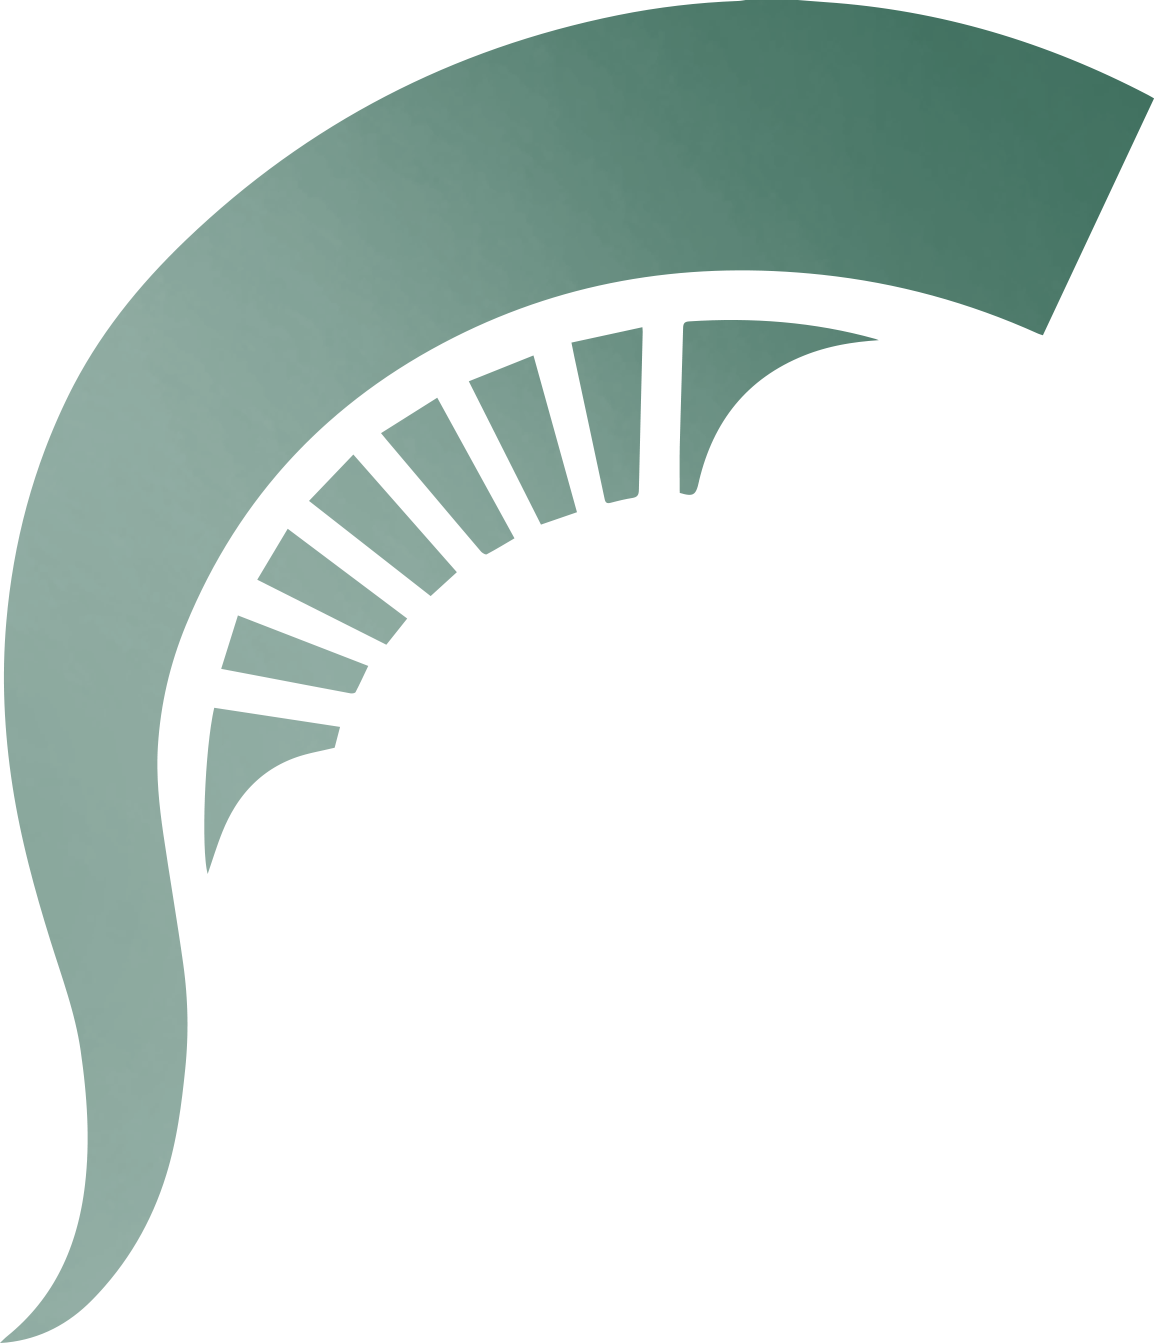 michigan state logo png